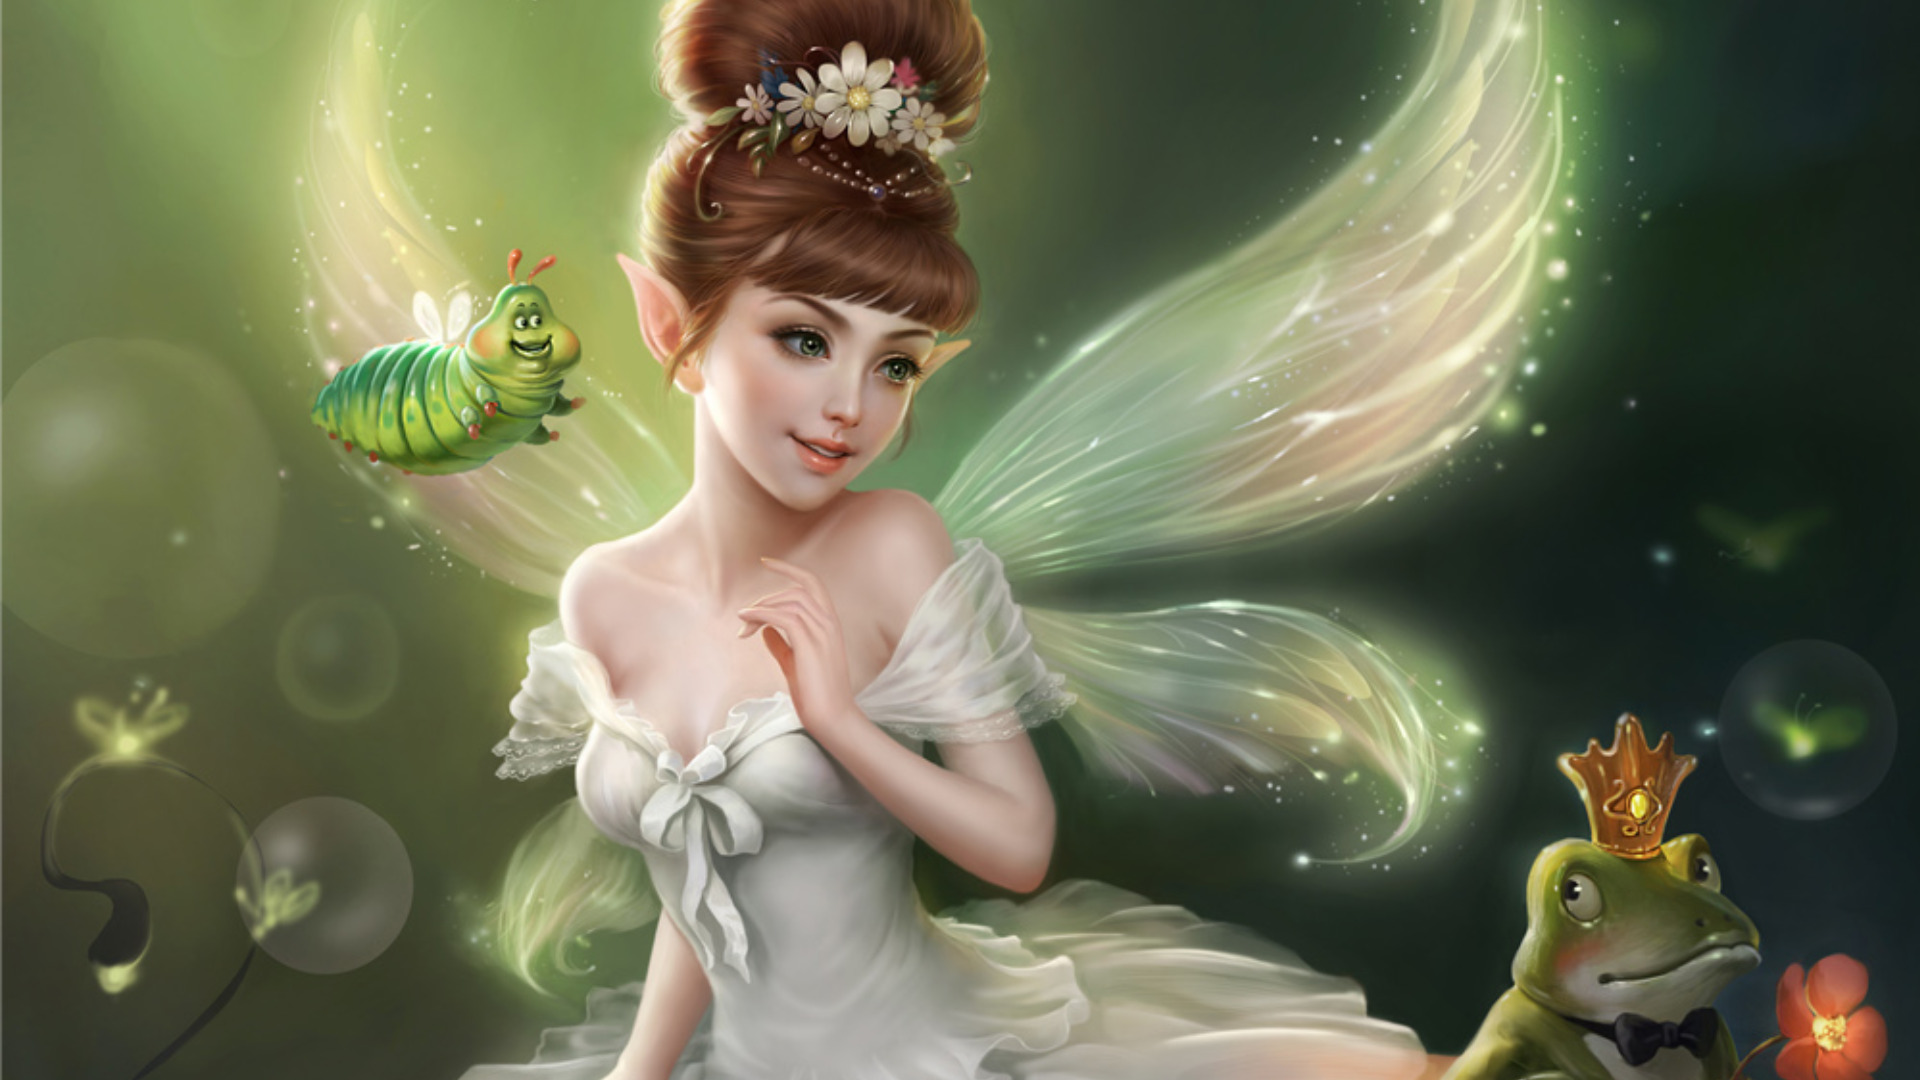 The Fairy And That Frog Prince Full HD Wallpaper Background